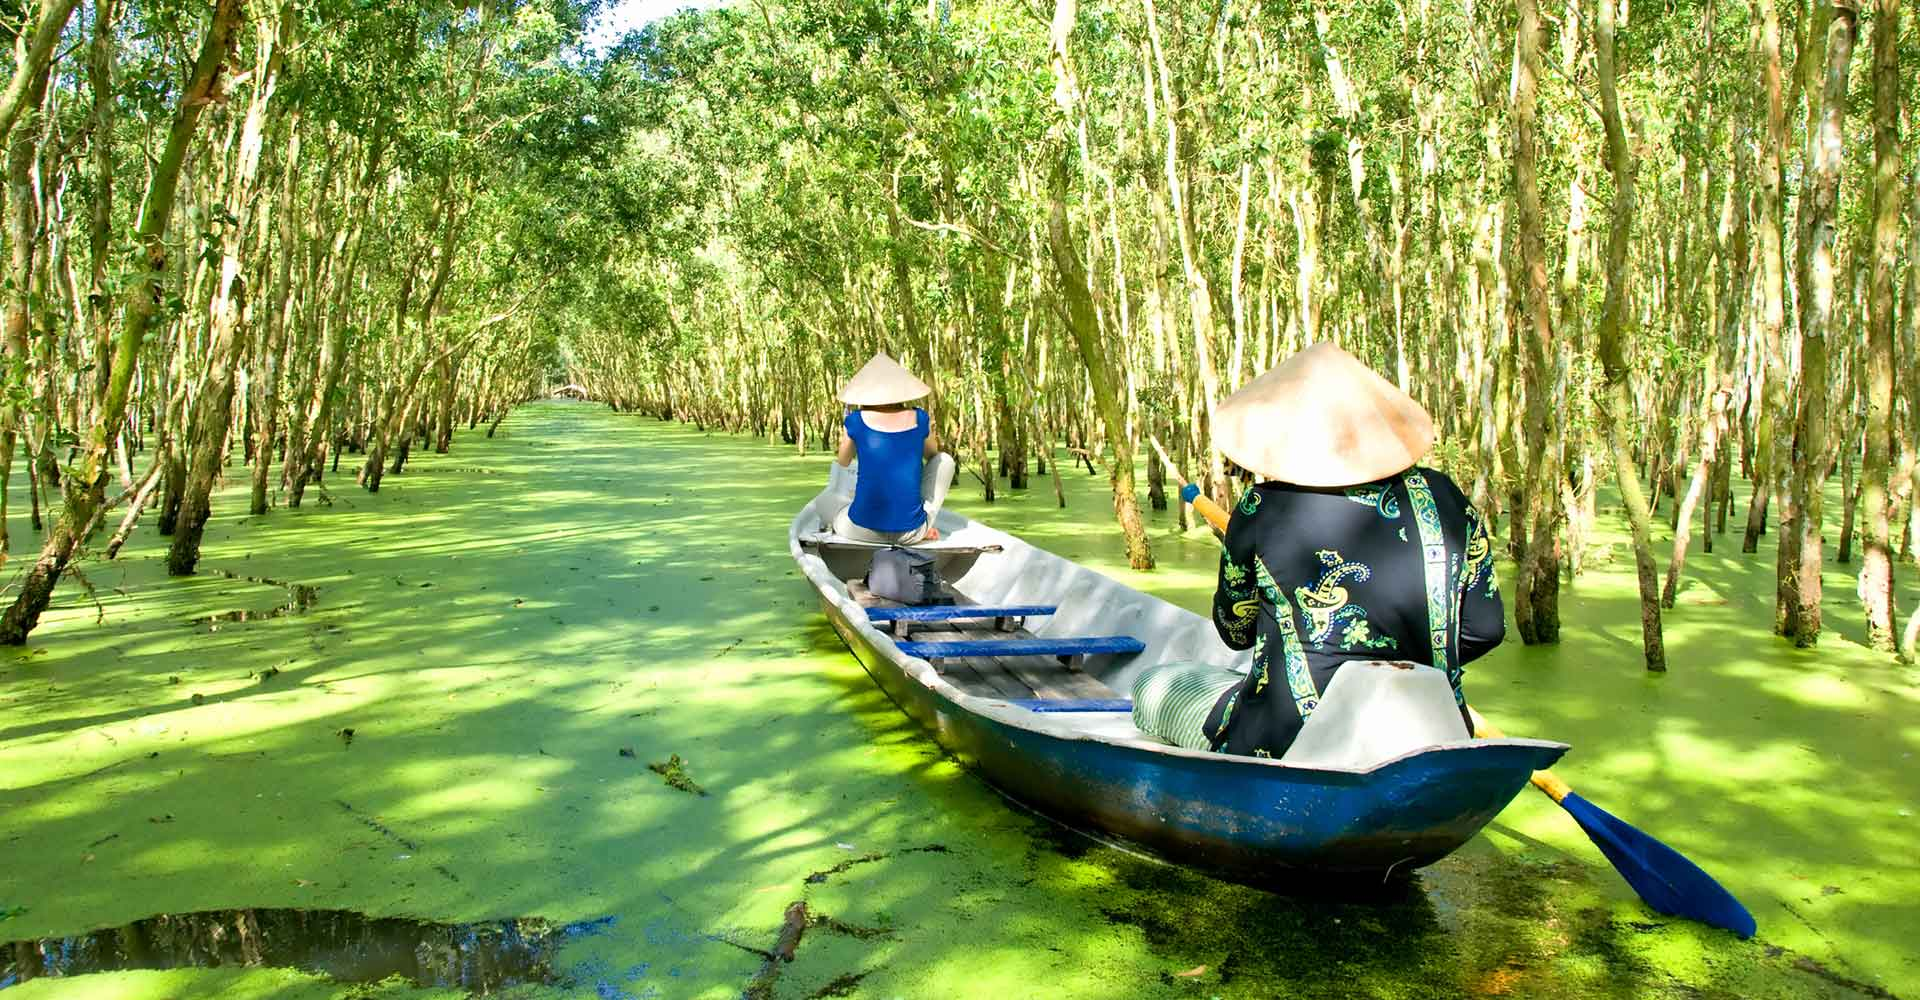 Mekong Delta: The Rice Bowl of Vietnam